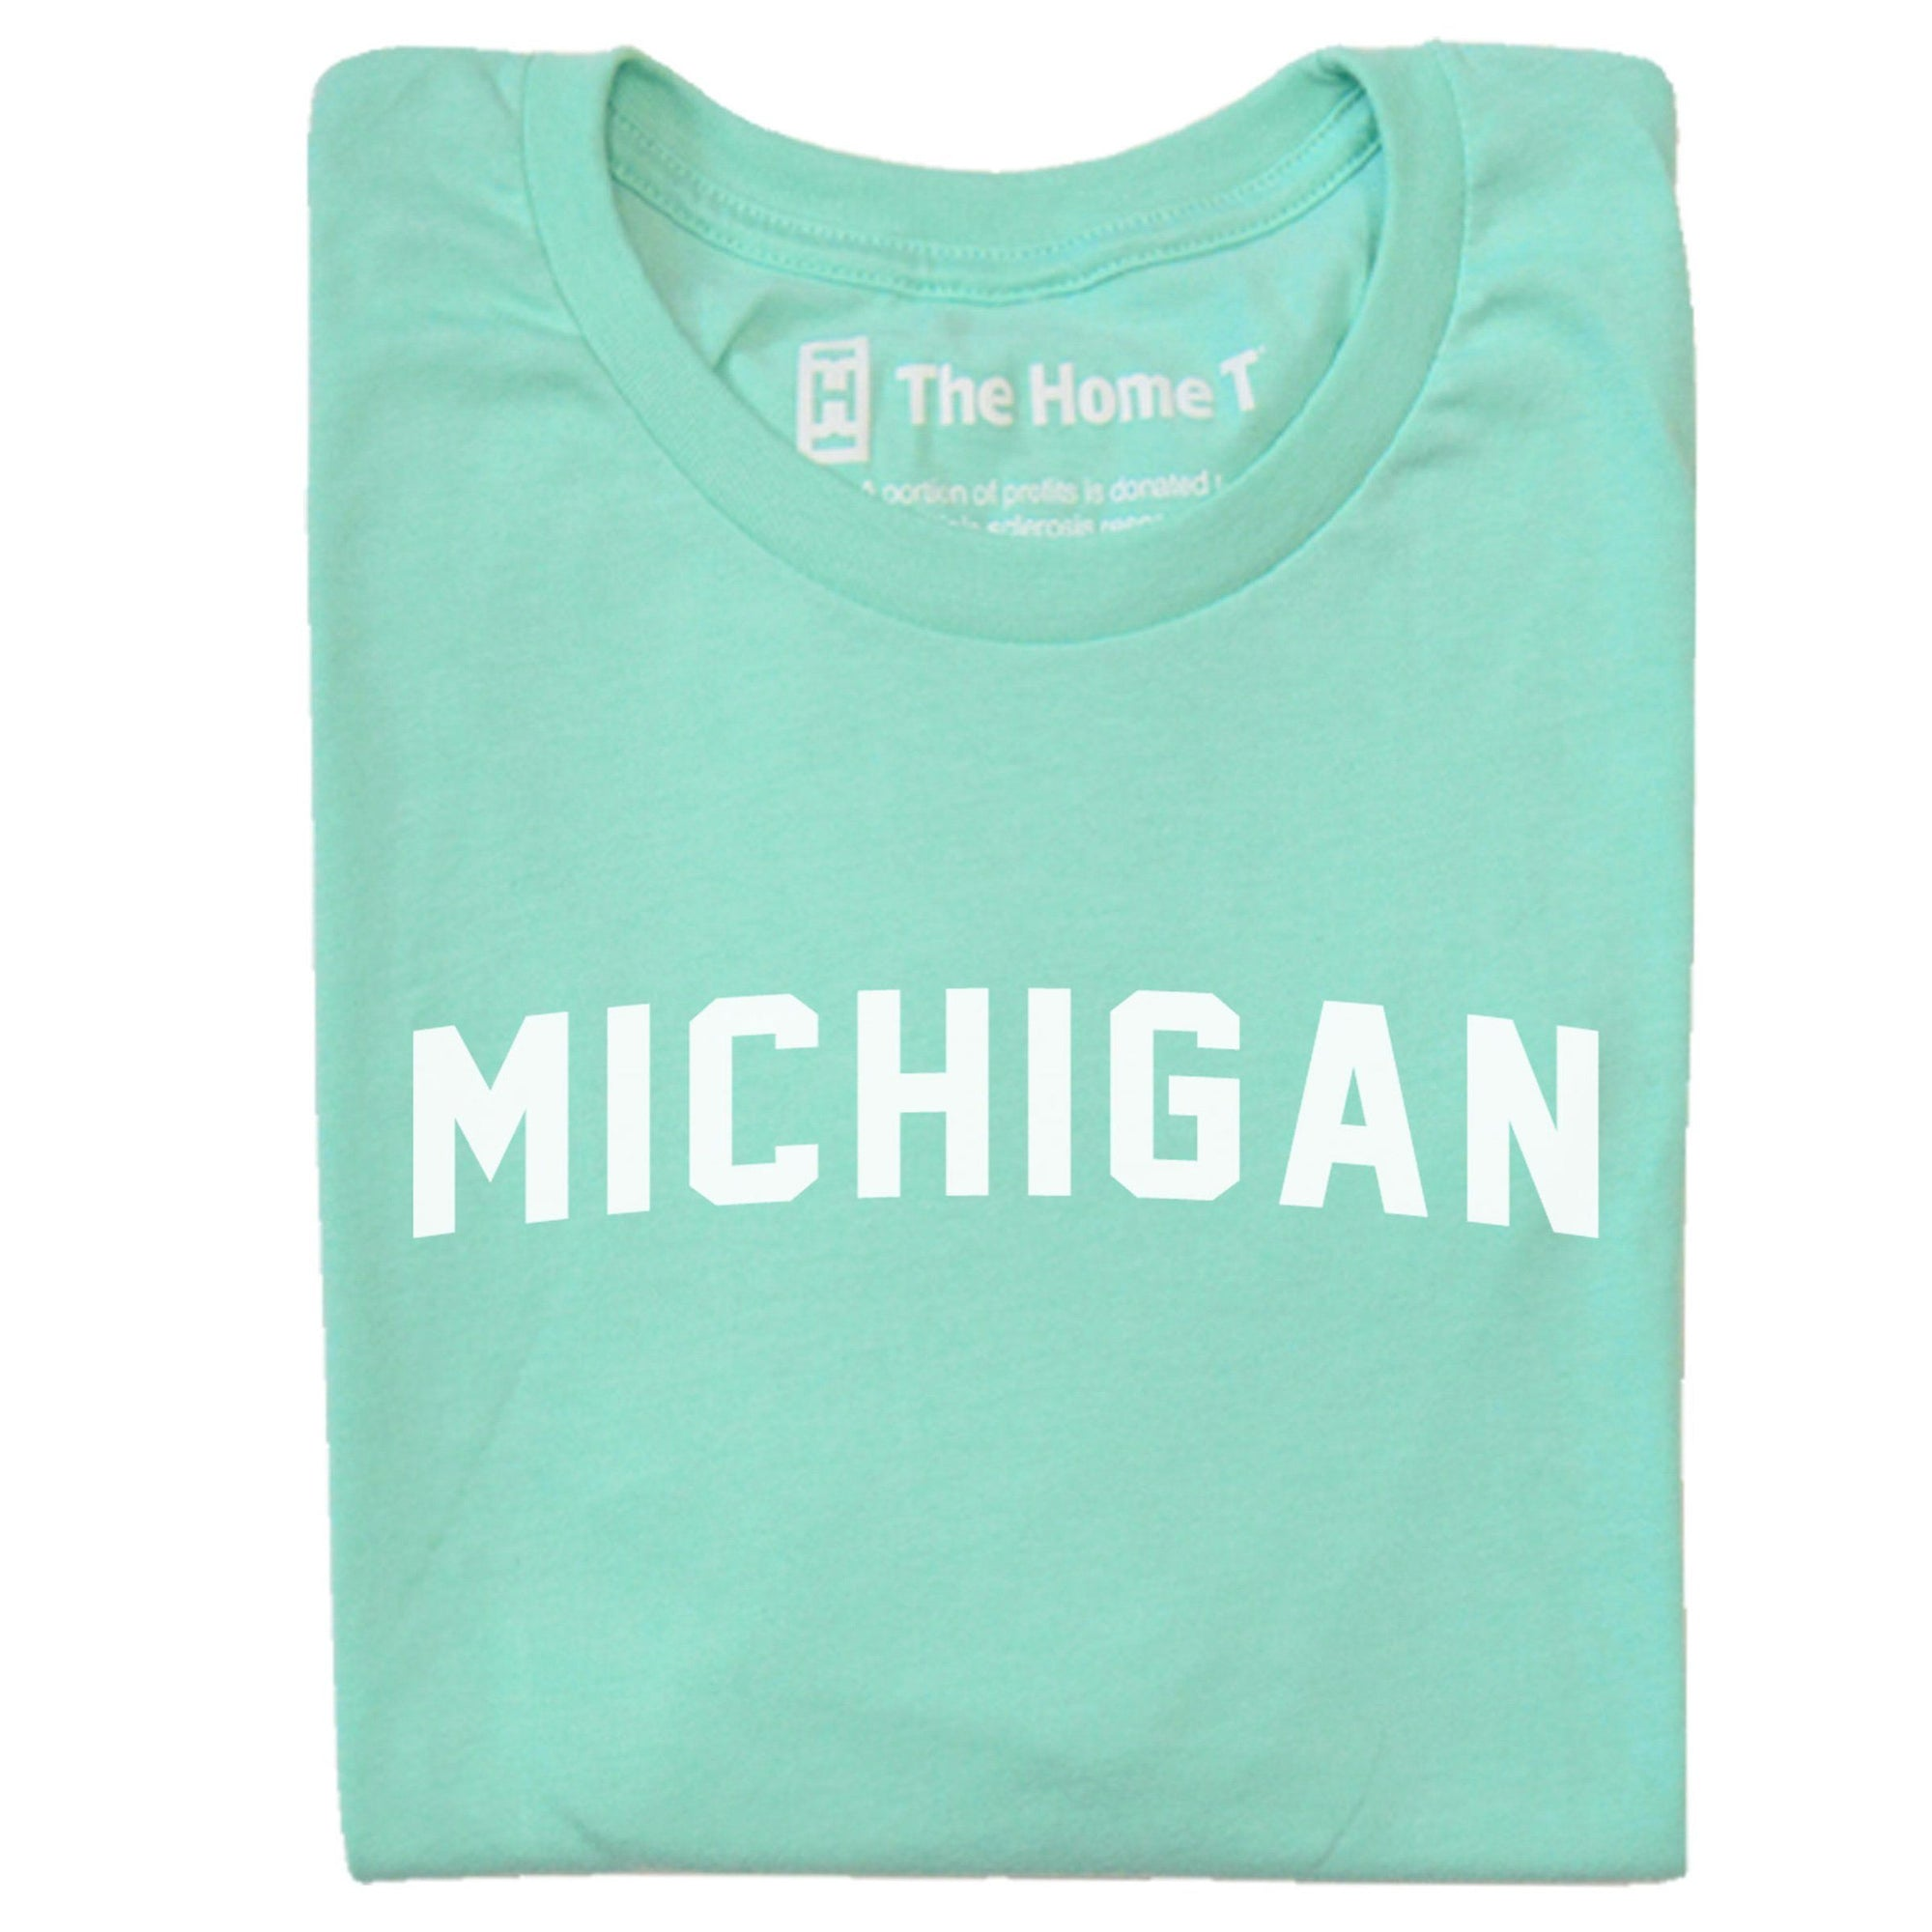 Michigan Arched The Home T XS Mint